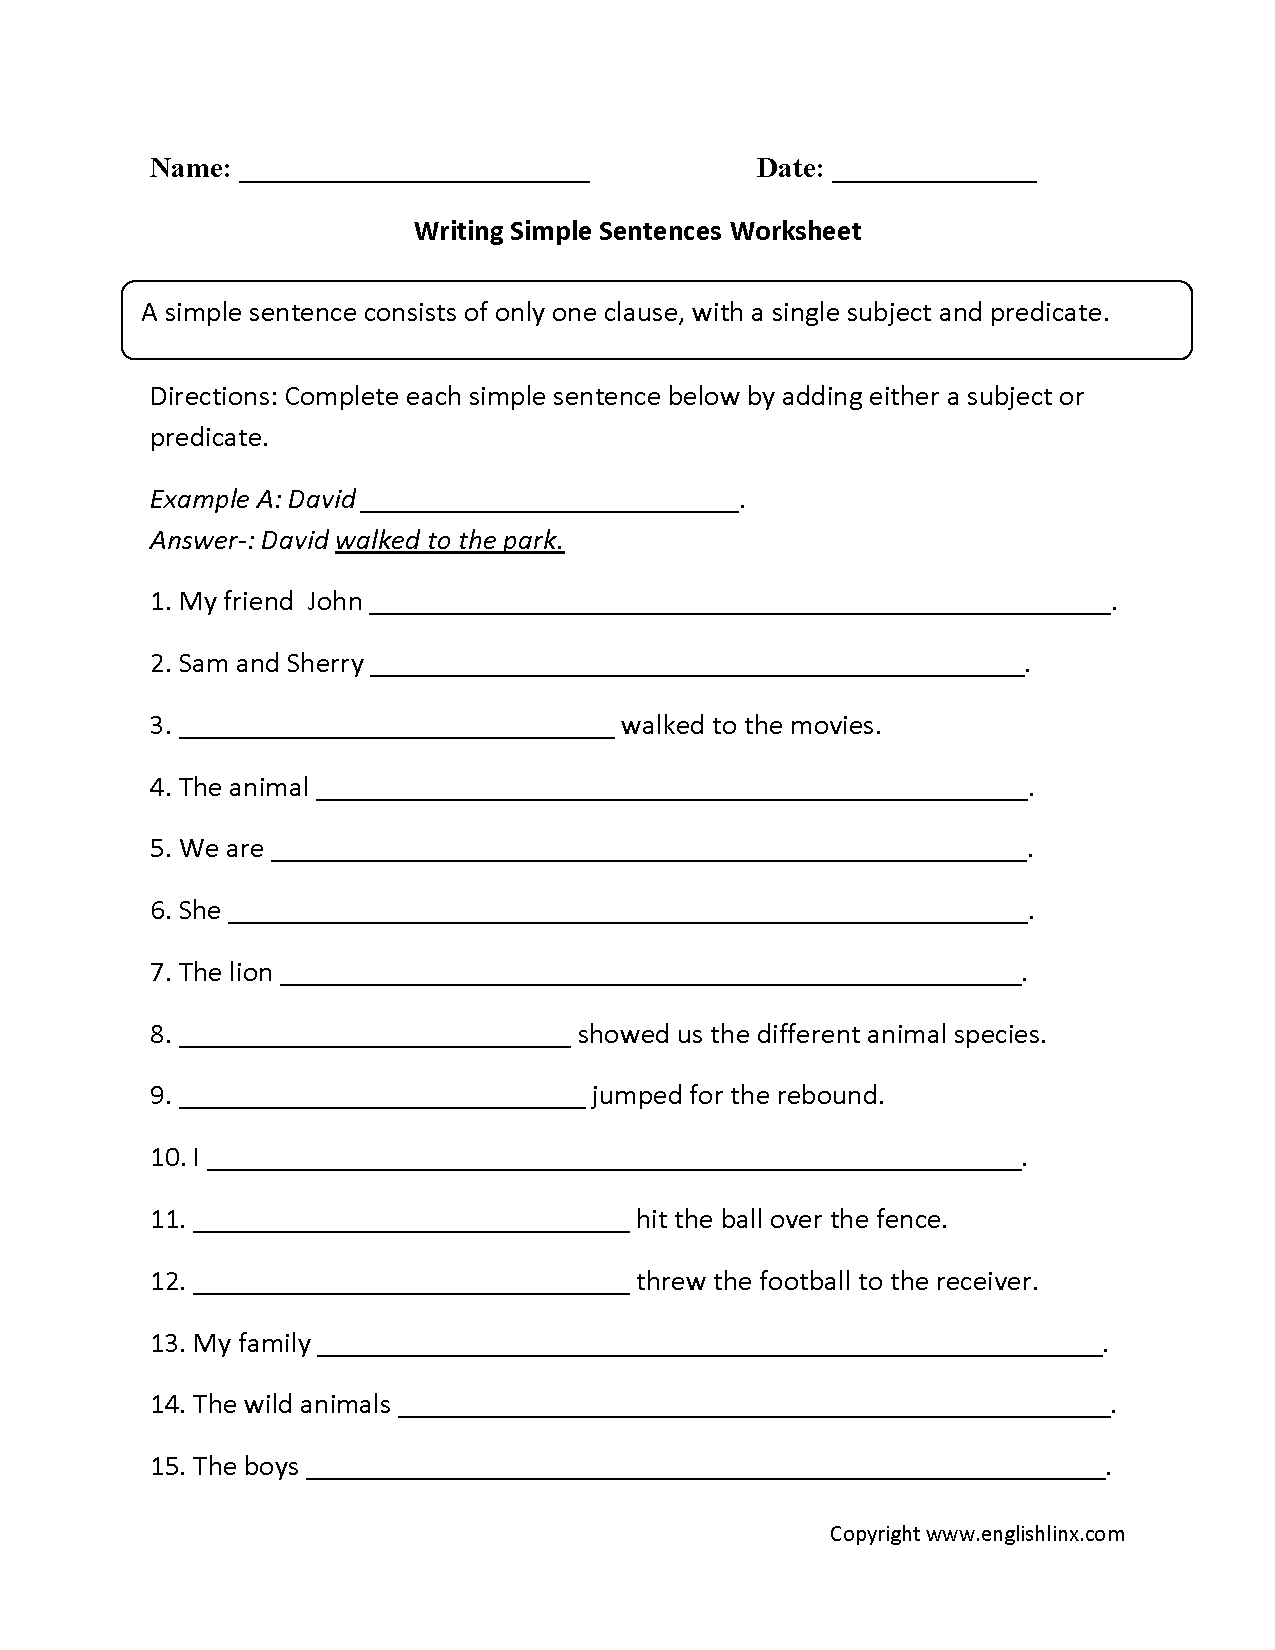 Worksheets Simple Sentences Worksheet sentences worksheets simple worksheet